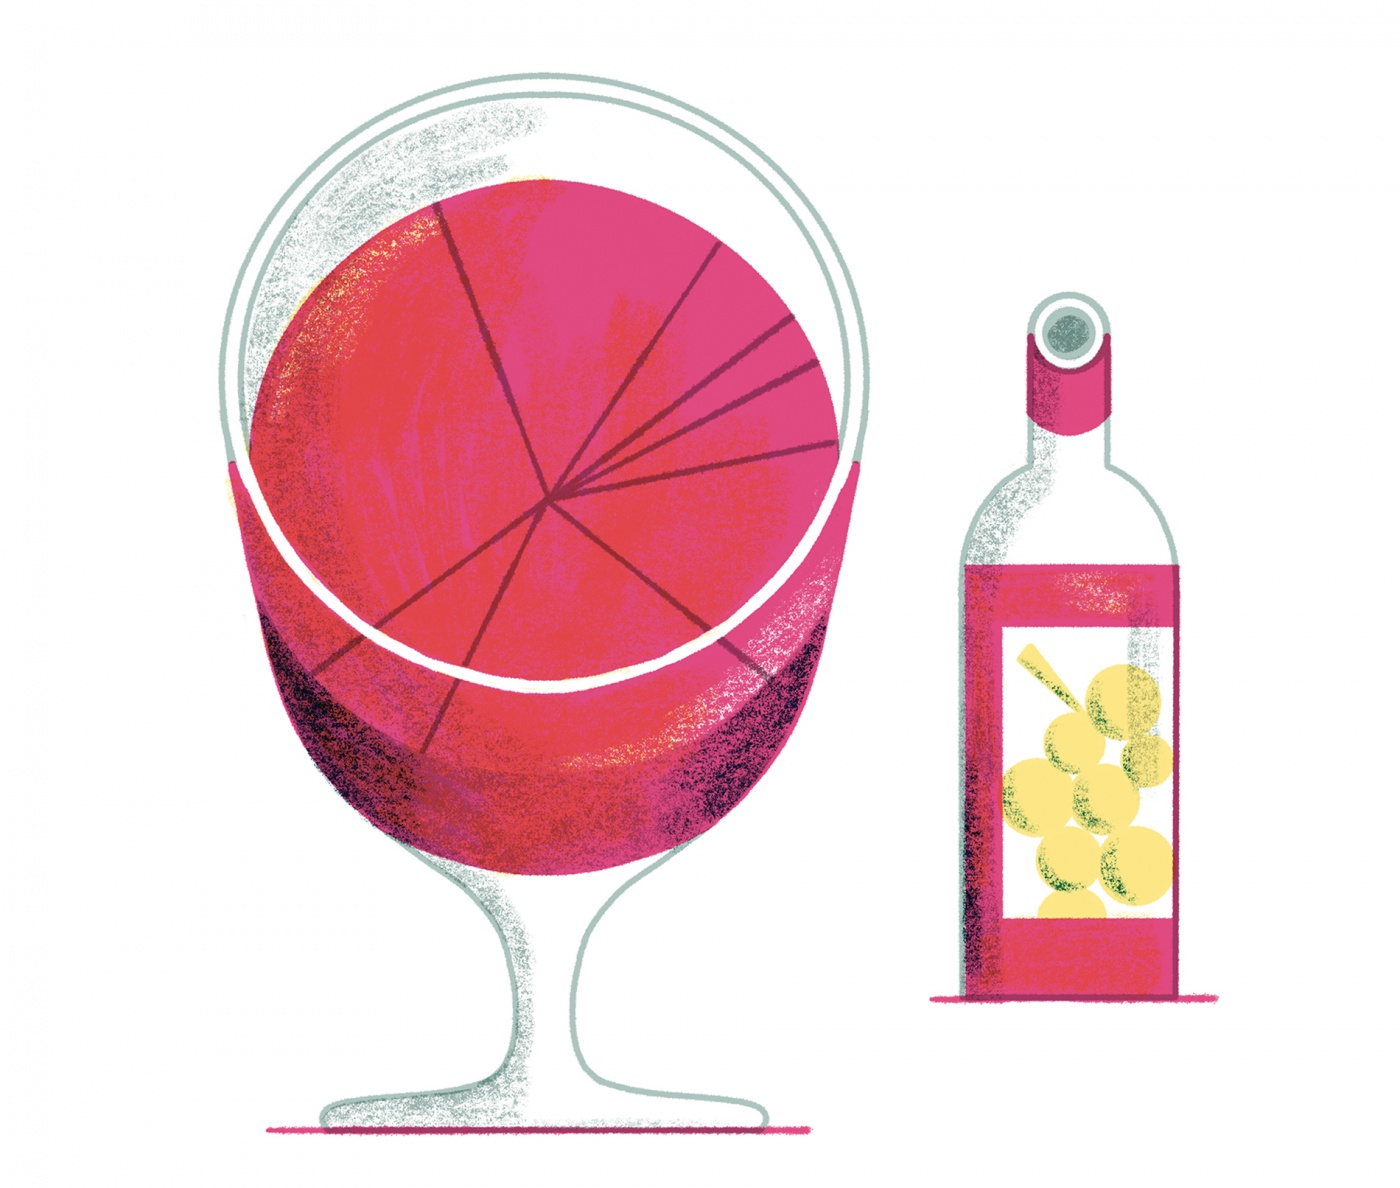 Illustration of a glass of wine with a circle graph on the surface